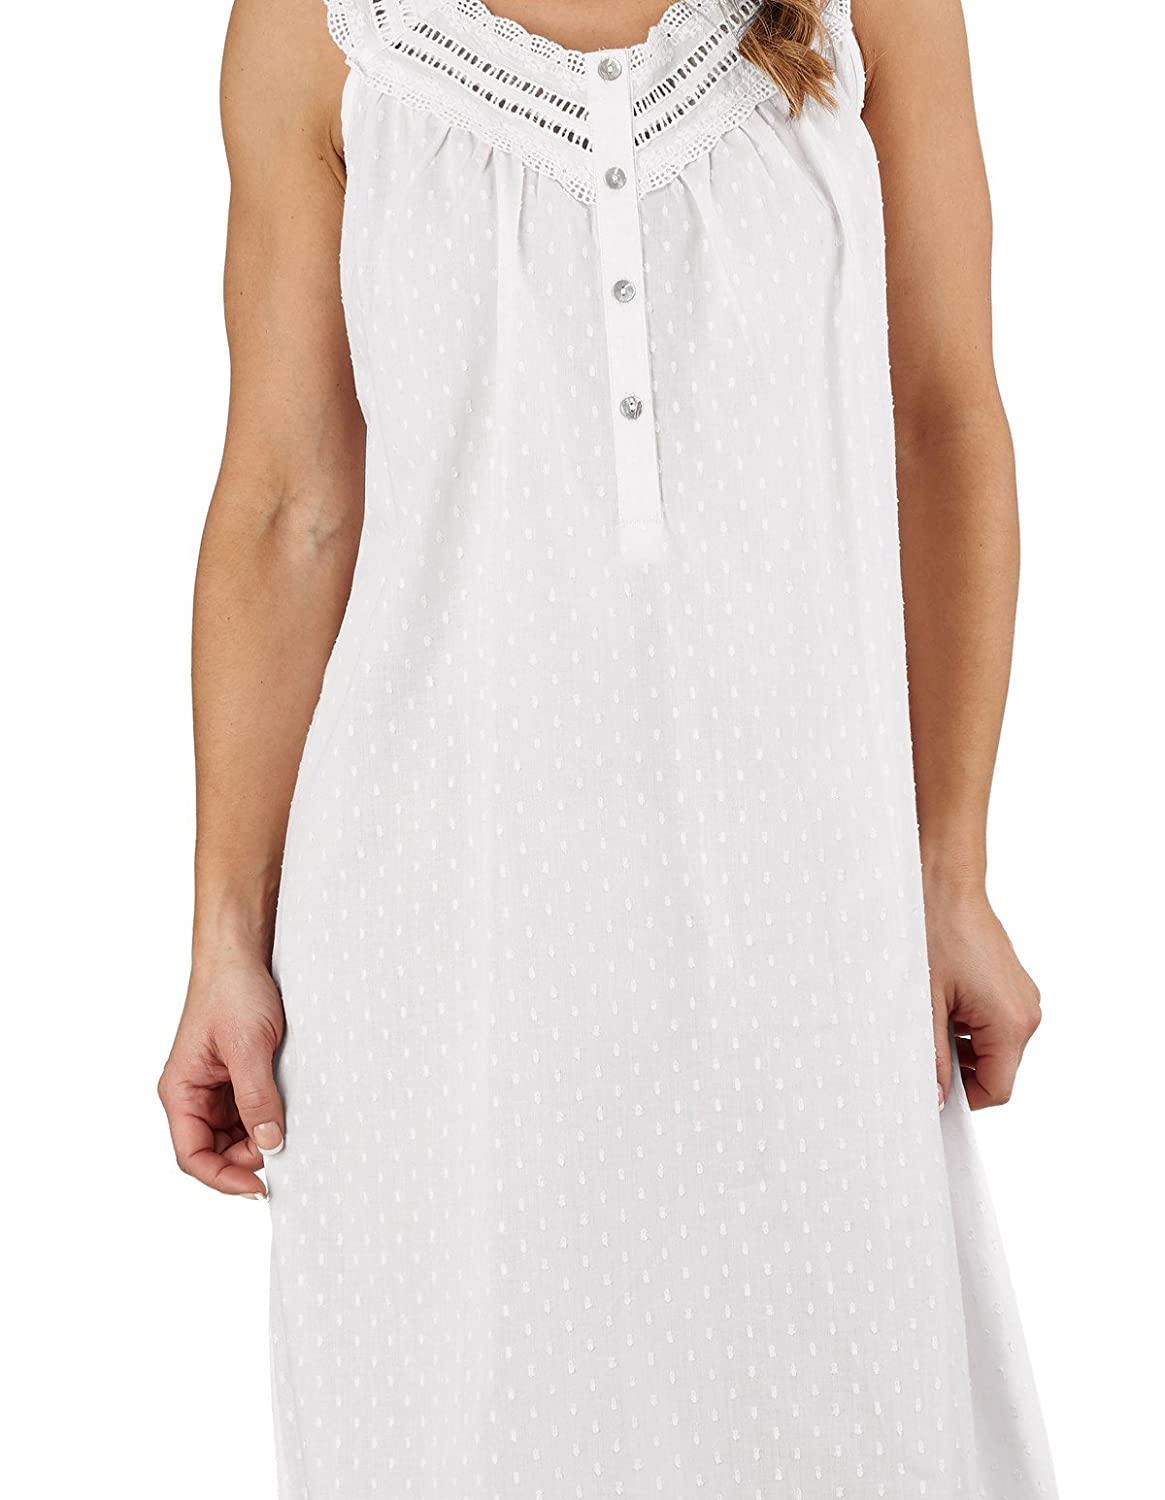 Slenderella ND1211L Women s Dobby Dot White 100% Cotton Gown Nightdress at  Amazon Women s Clothing store  4f1009745